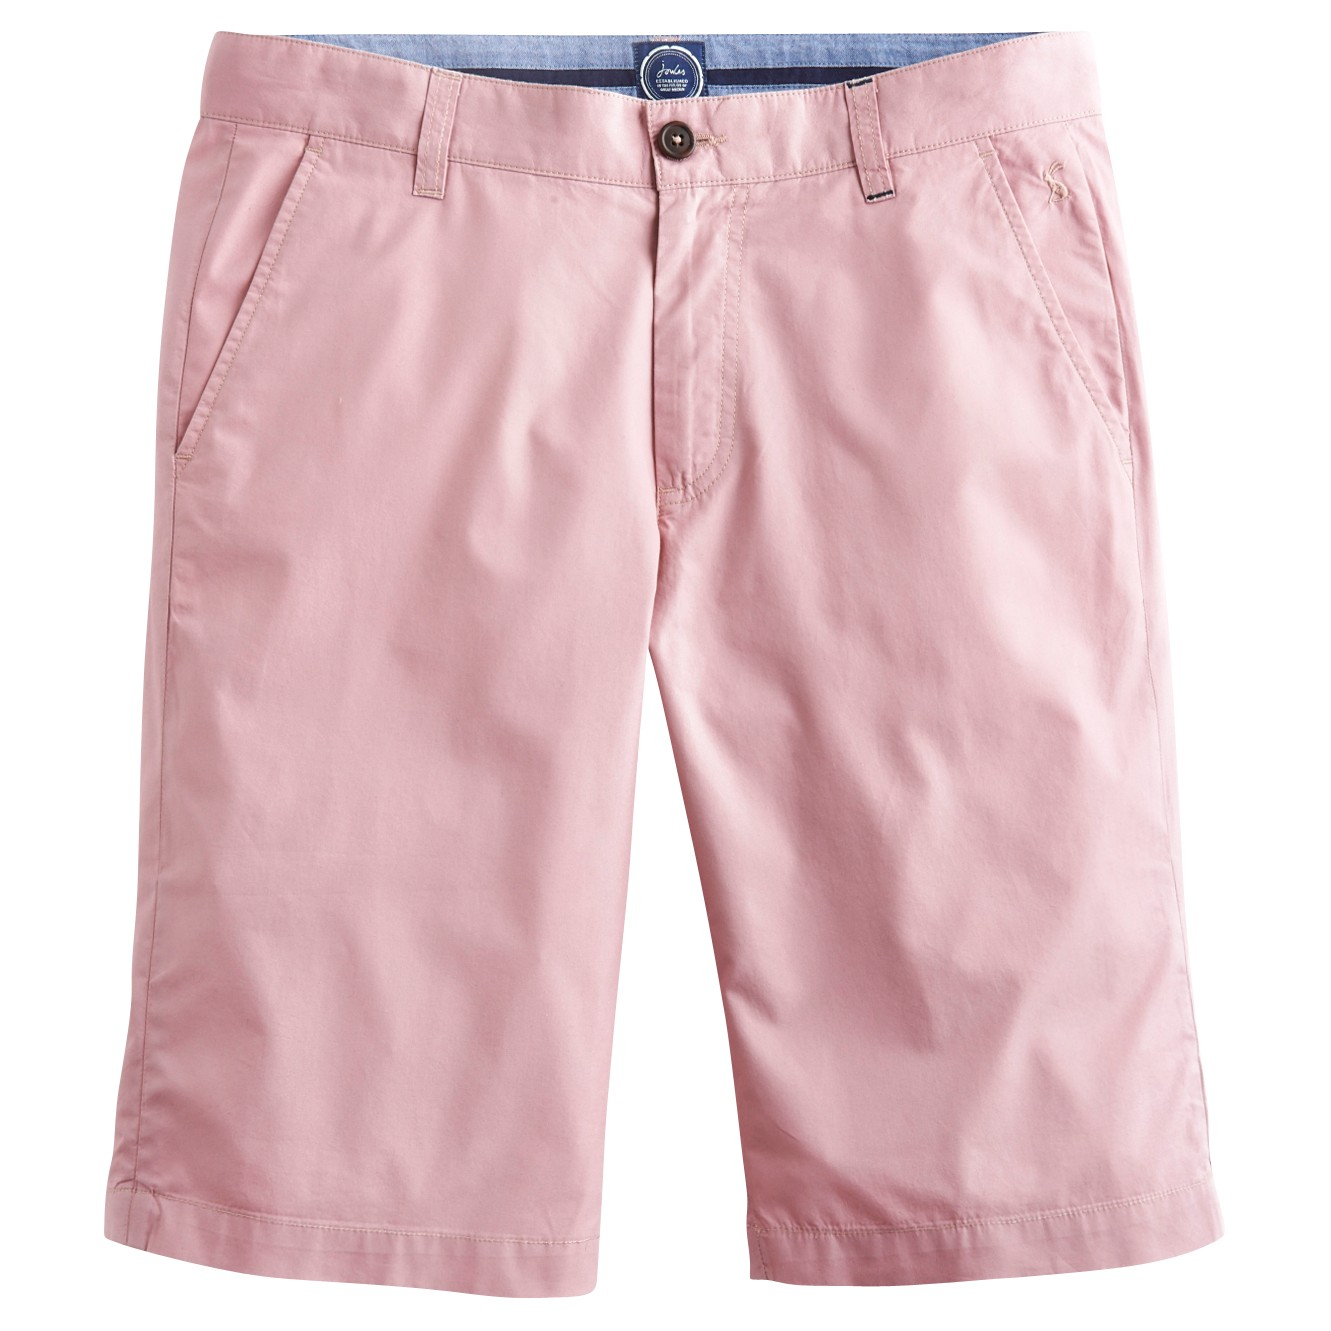 Shop Pink Flamingo Men's Clothing from CafePress. Find great designs on T-Shirts, Hoodies, Pajamas, Sweatshirts, Boxer Shorts and more! Free Returns .